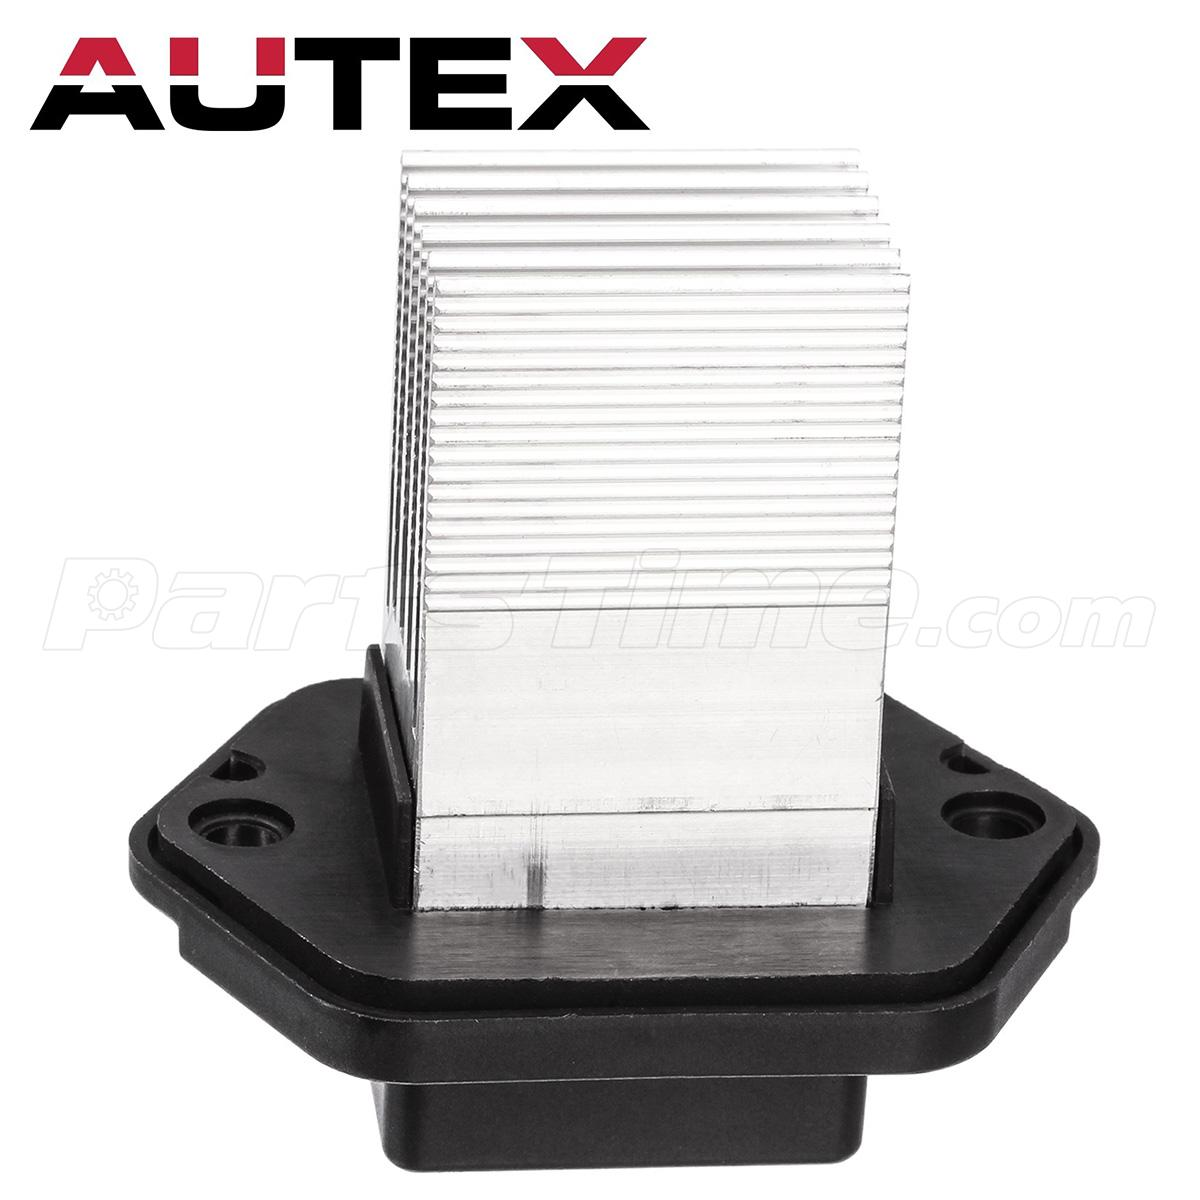 a c heater blower motor resistor for 2007 2008 kia spectra 53 a c heater blower motor resistor for 2007 2008 kia spectra 53 69696 4p1466